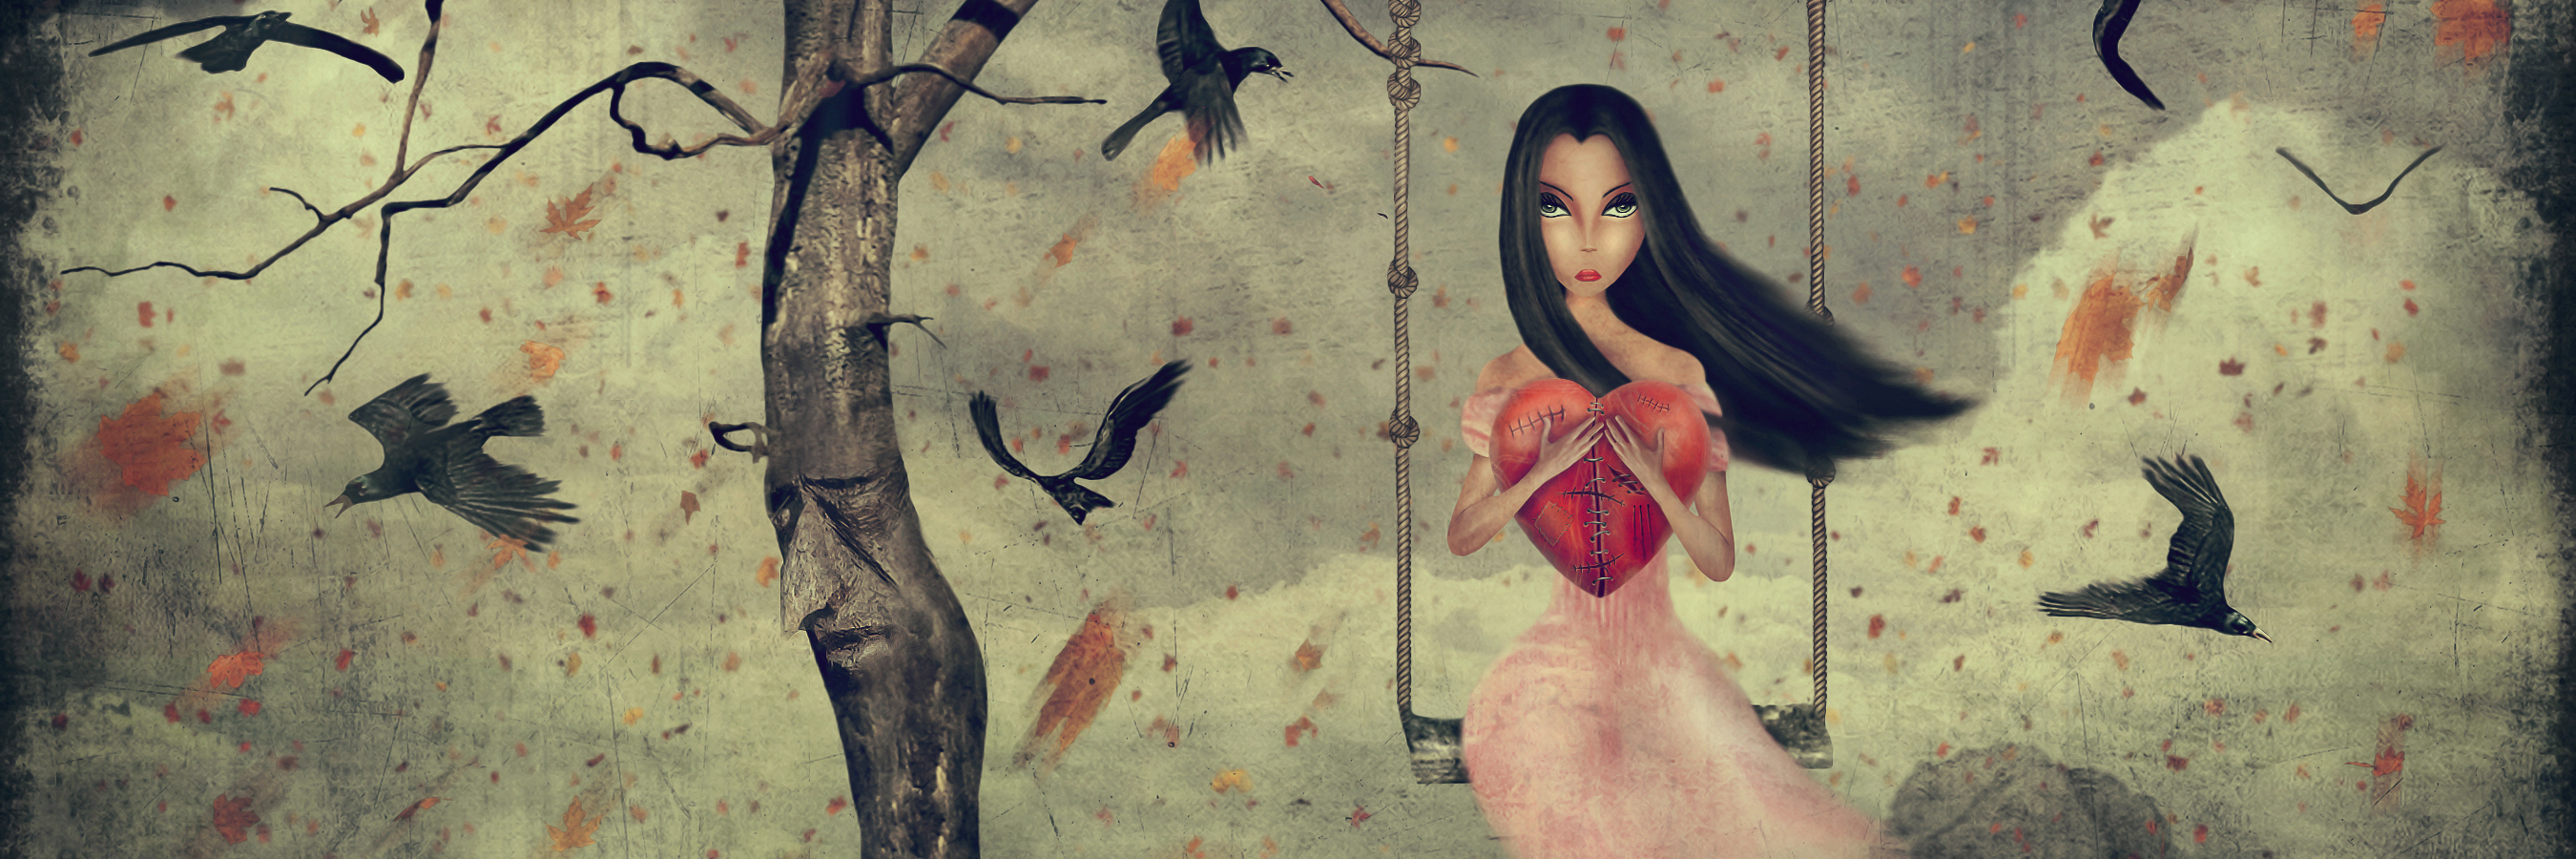 An art piece of a sad girl sitting on a swing, hanging from an empty tree.